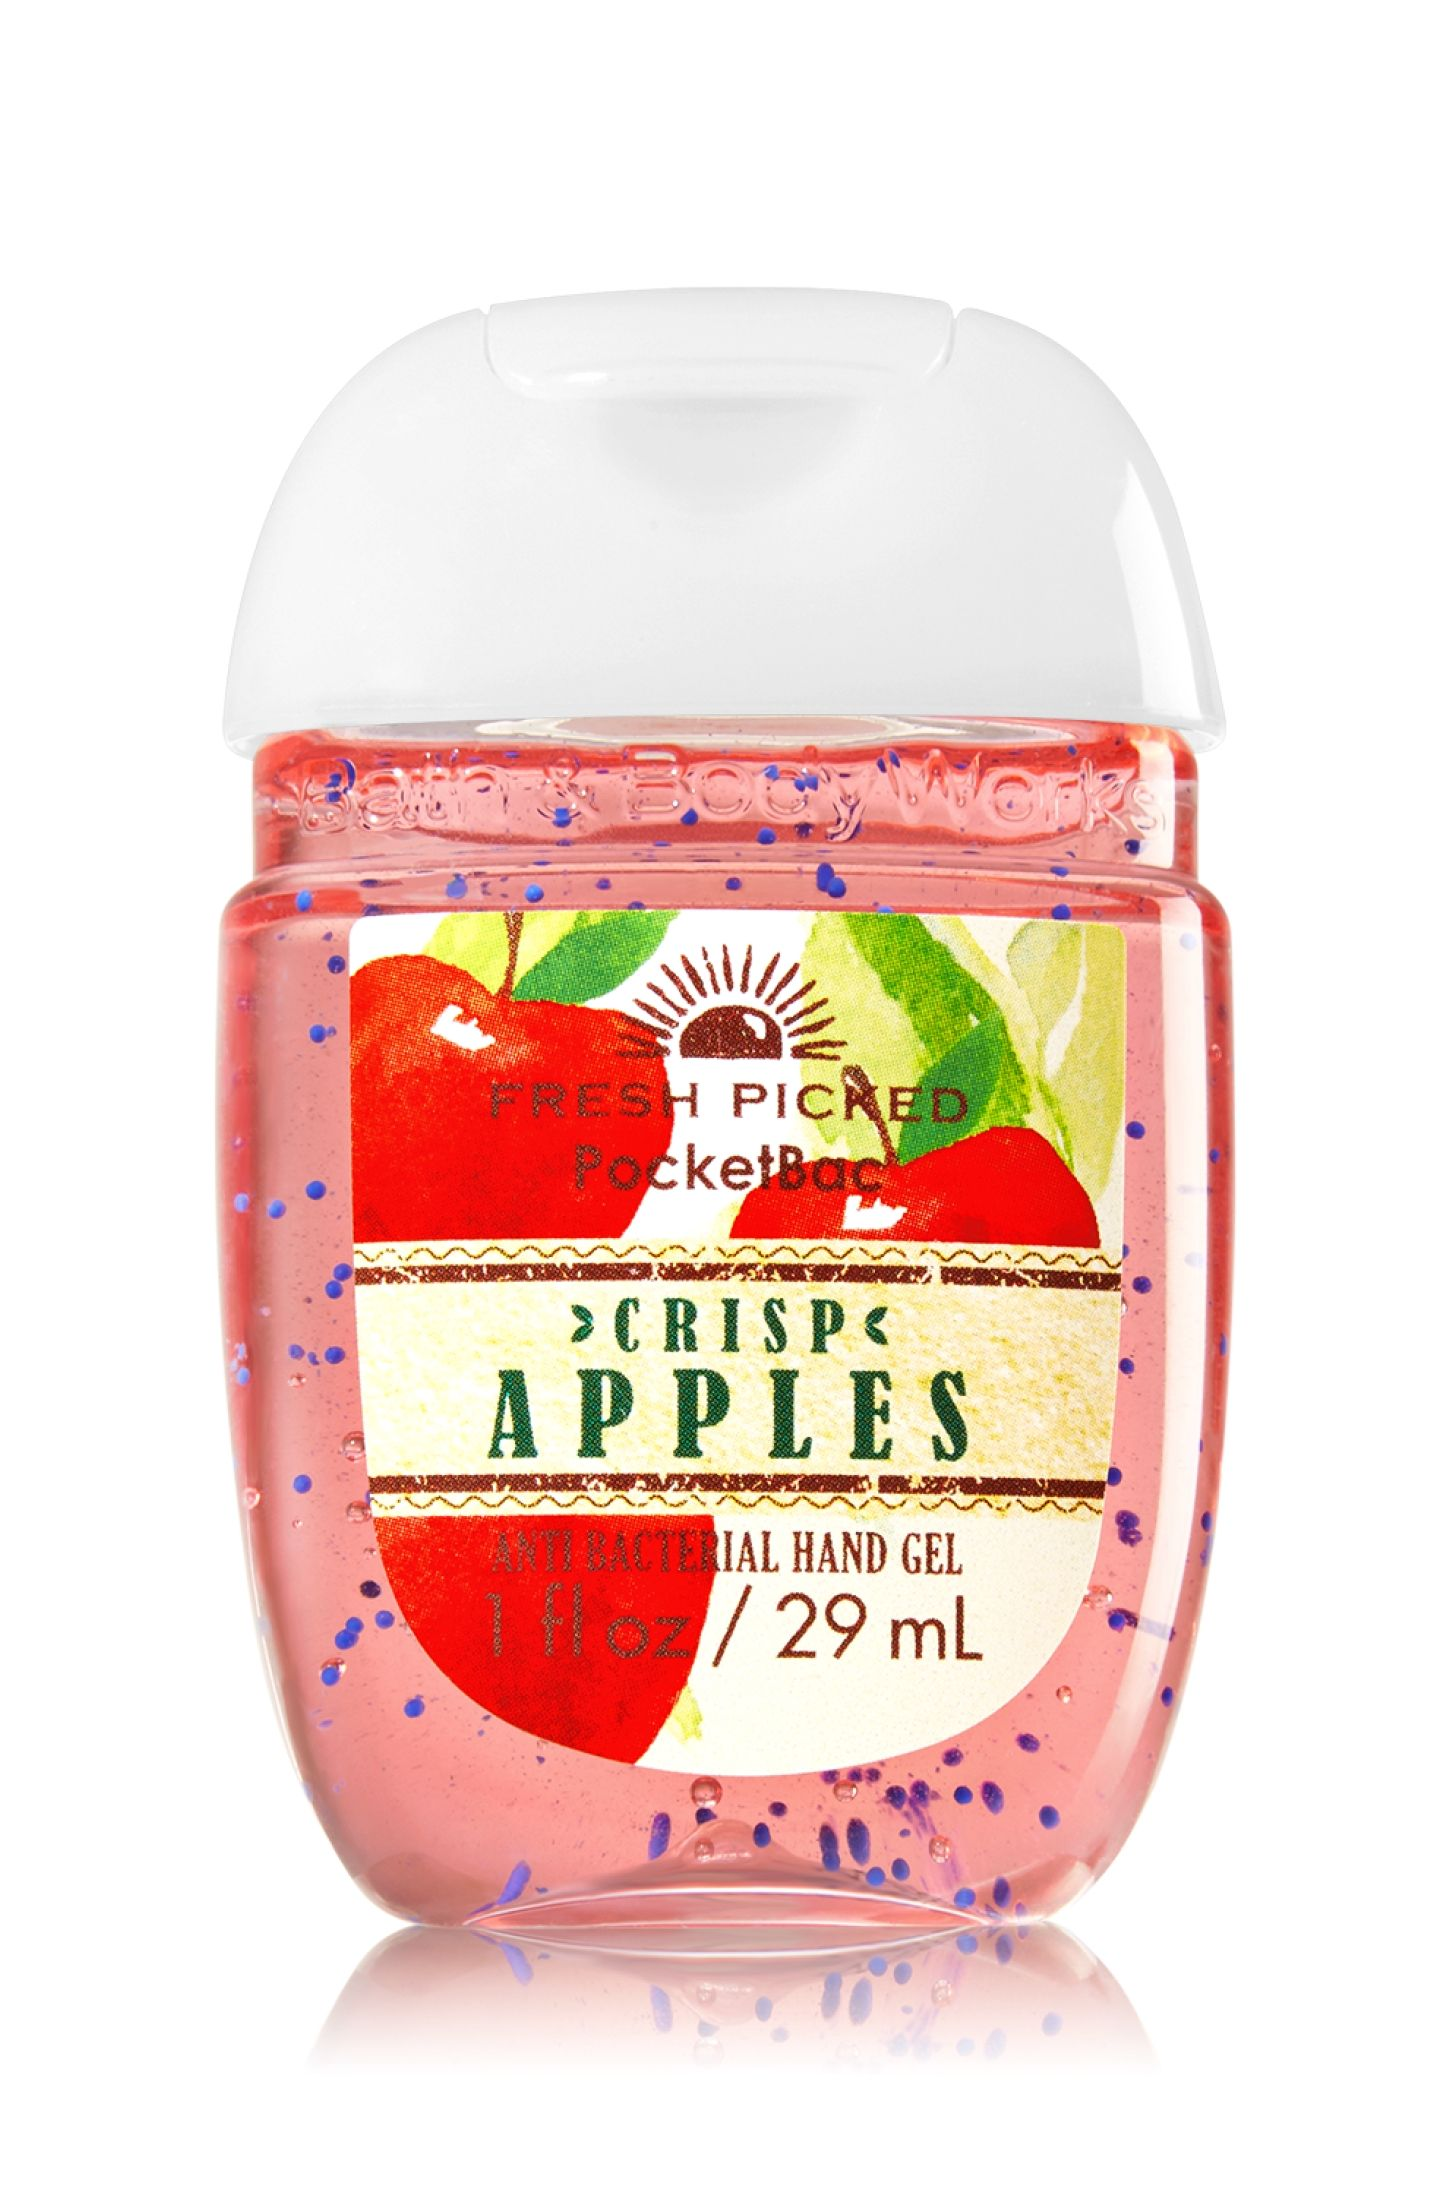 Pin By Carolina Solis On Bath And Body Works Bath And Body Works